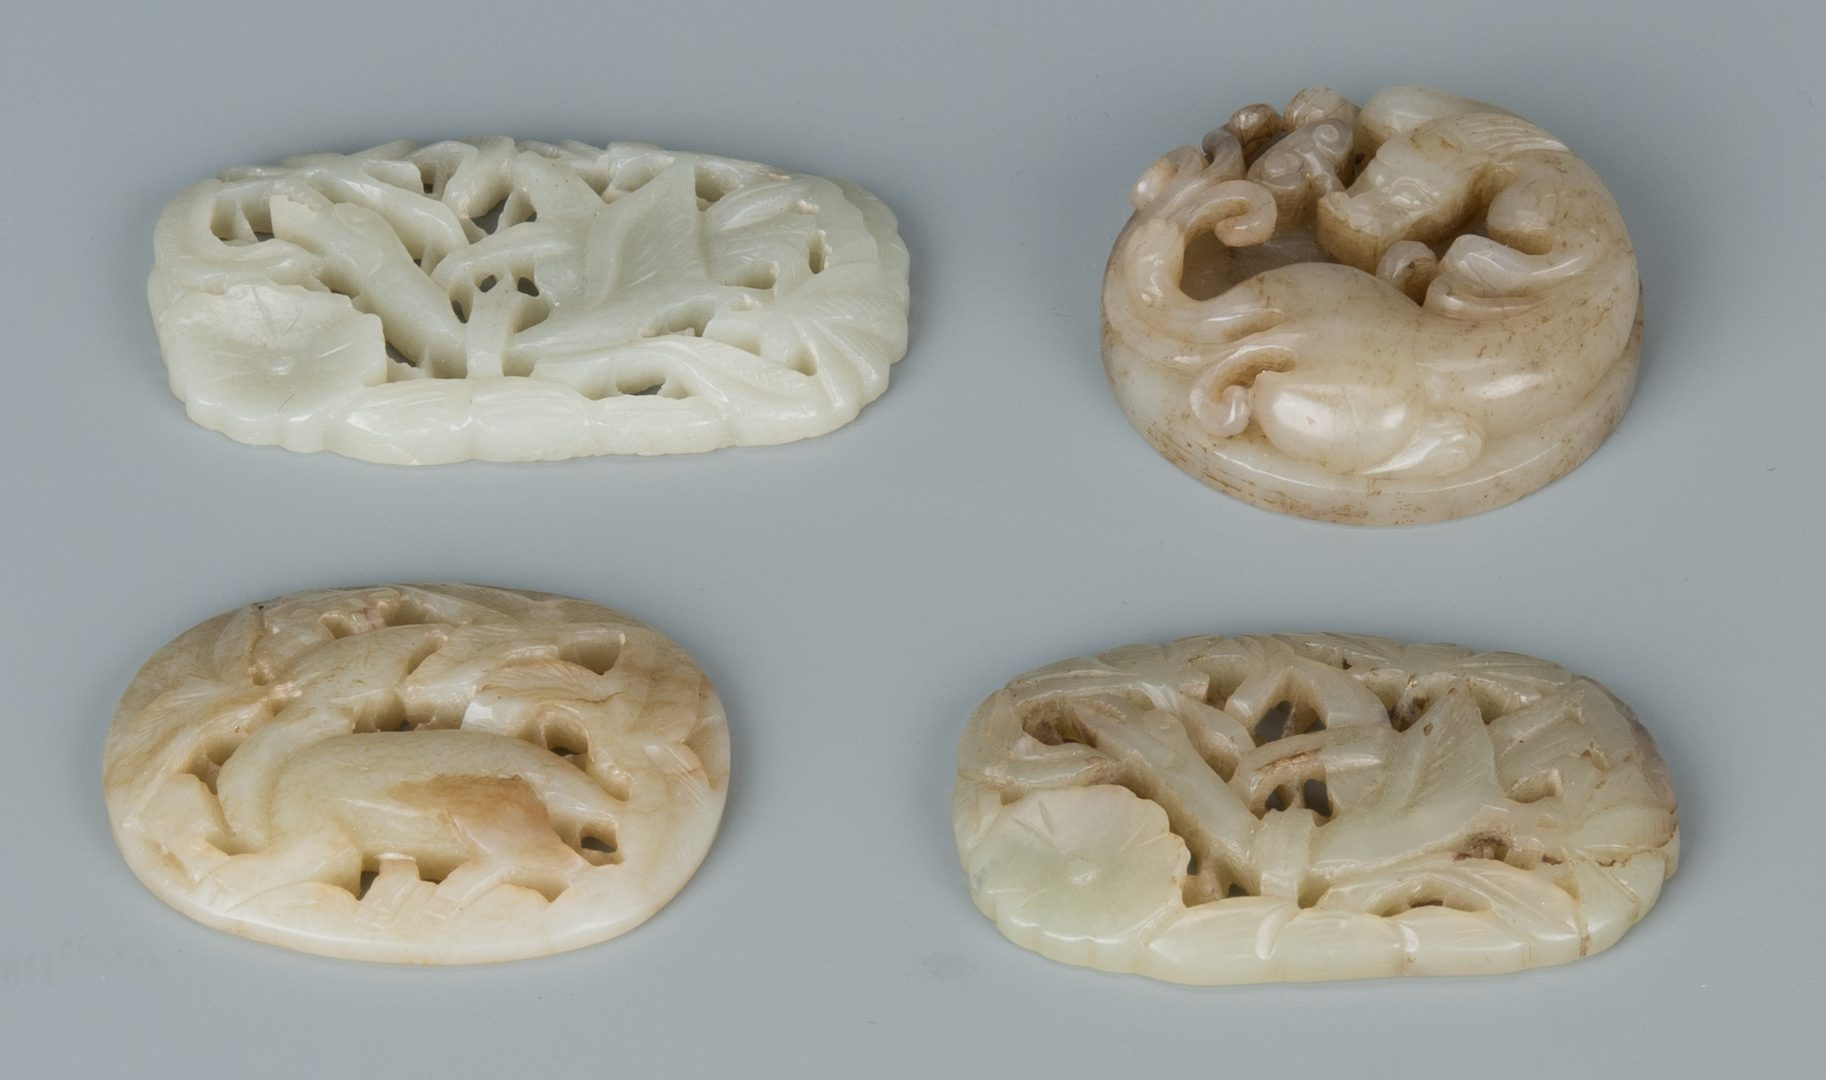 Lot 132: 5 Carved Chinese Celadon Jade Items